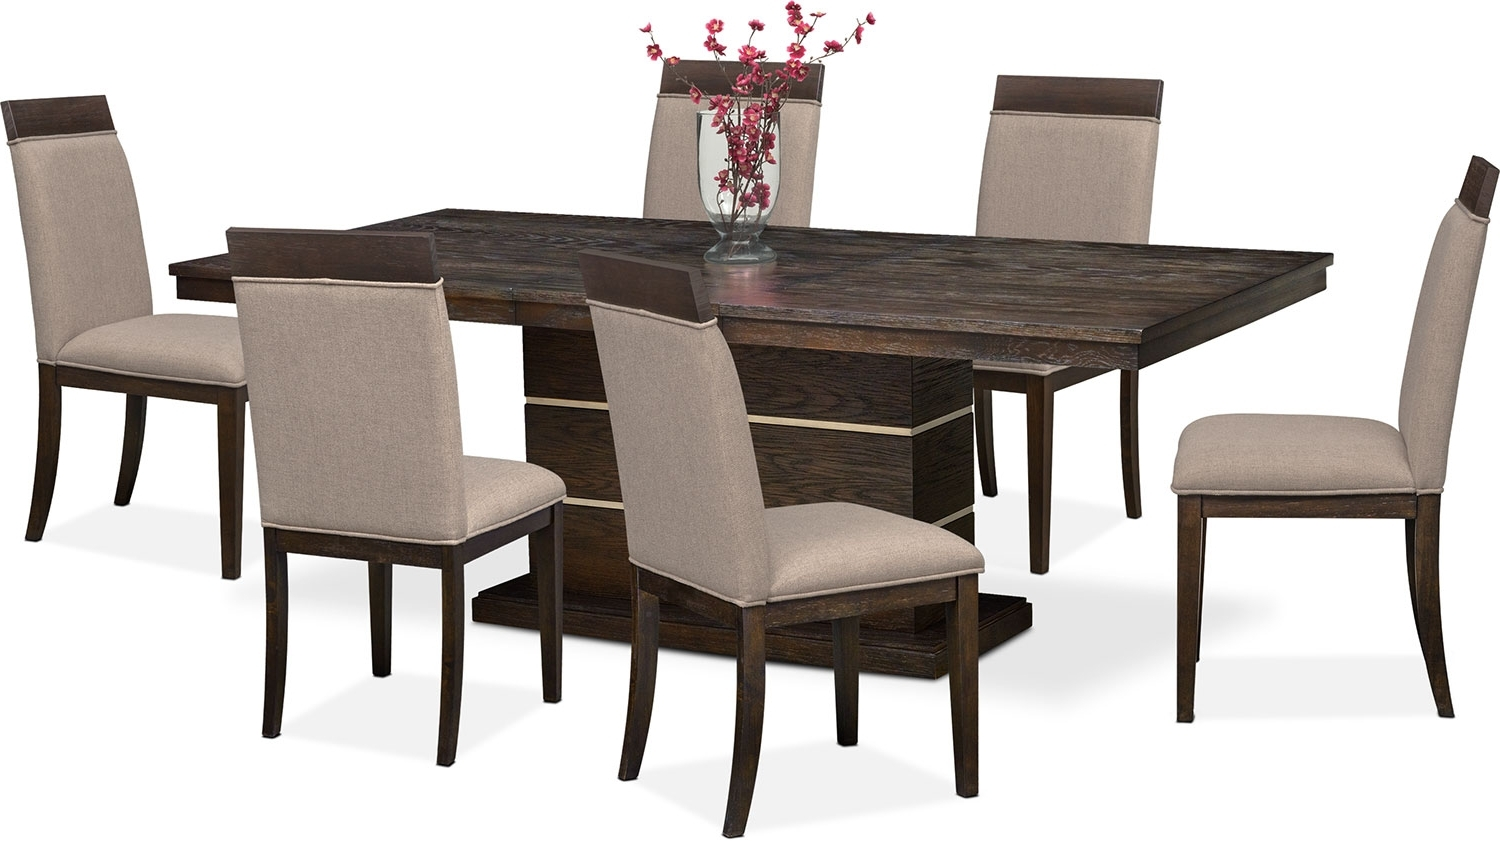 Value City Regarding Popular Gavin 7 Piece Dining Sets With Clint Side Chairs (View 8 of 25)